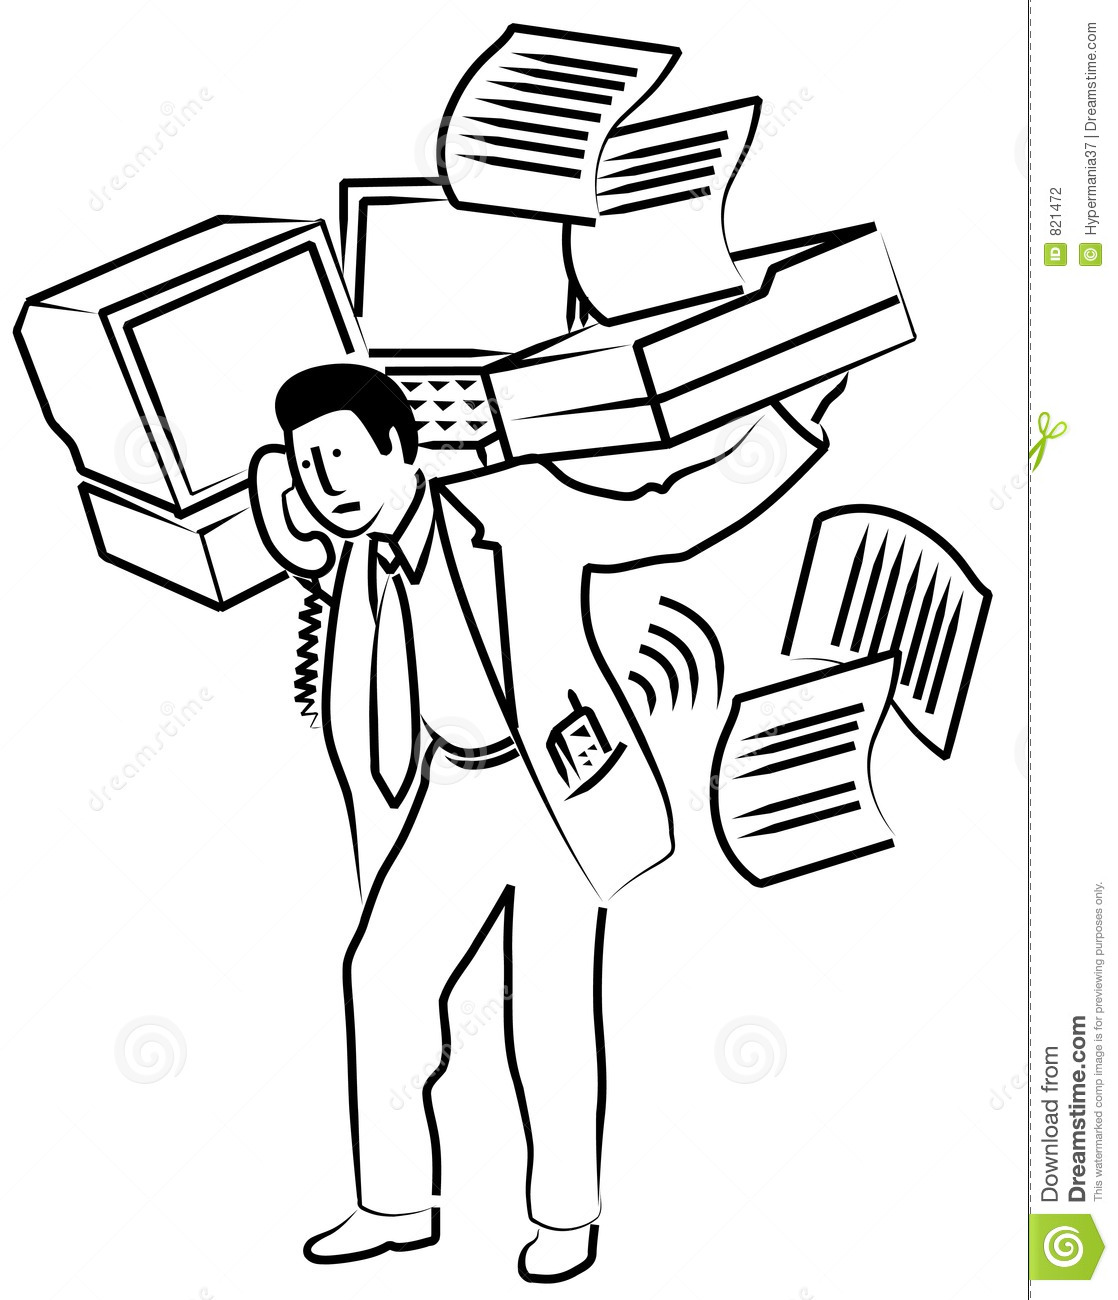 Man Carrying Office Equipment Stock Illustration